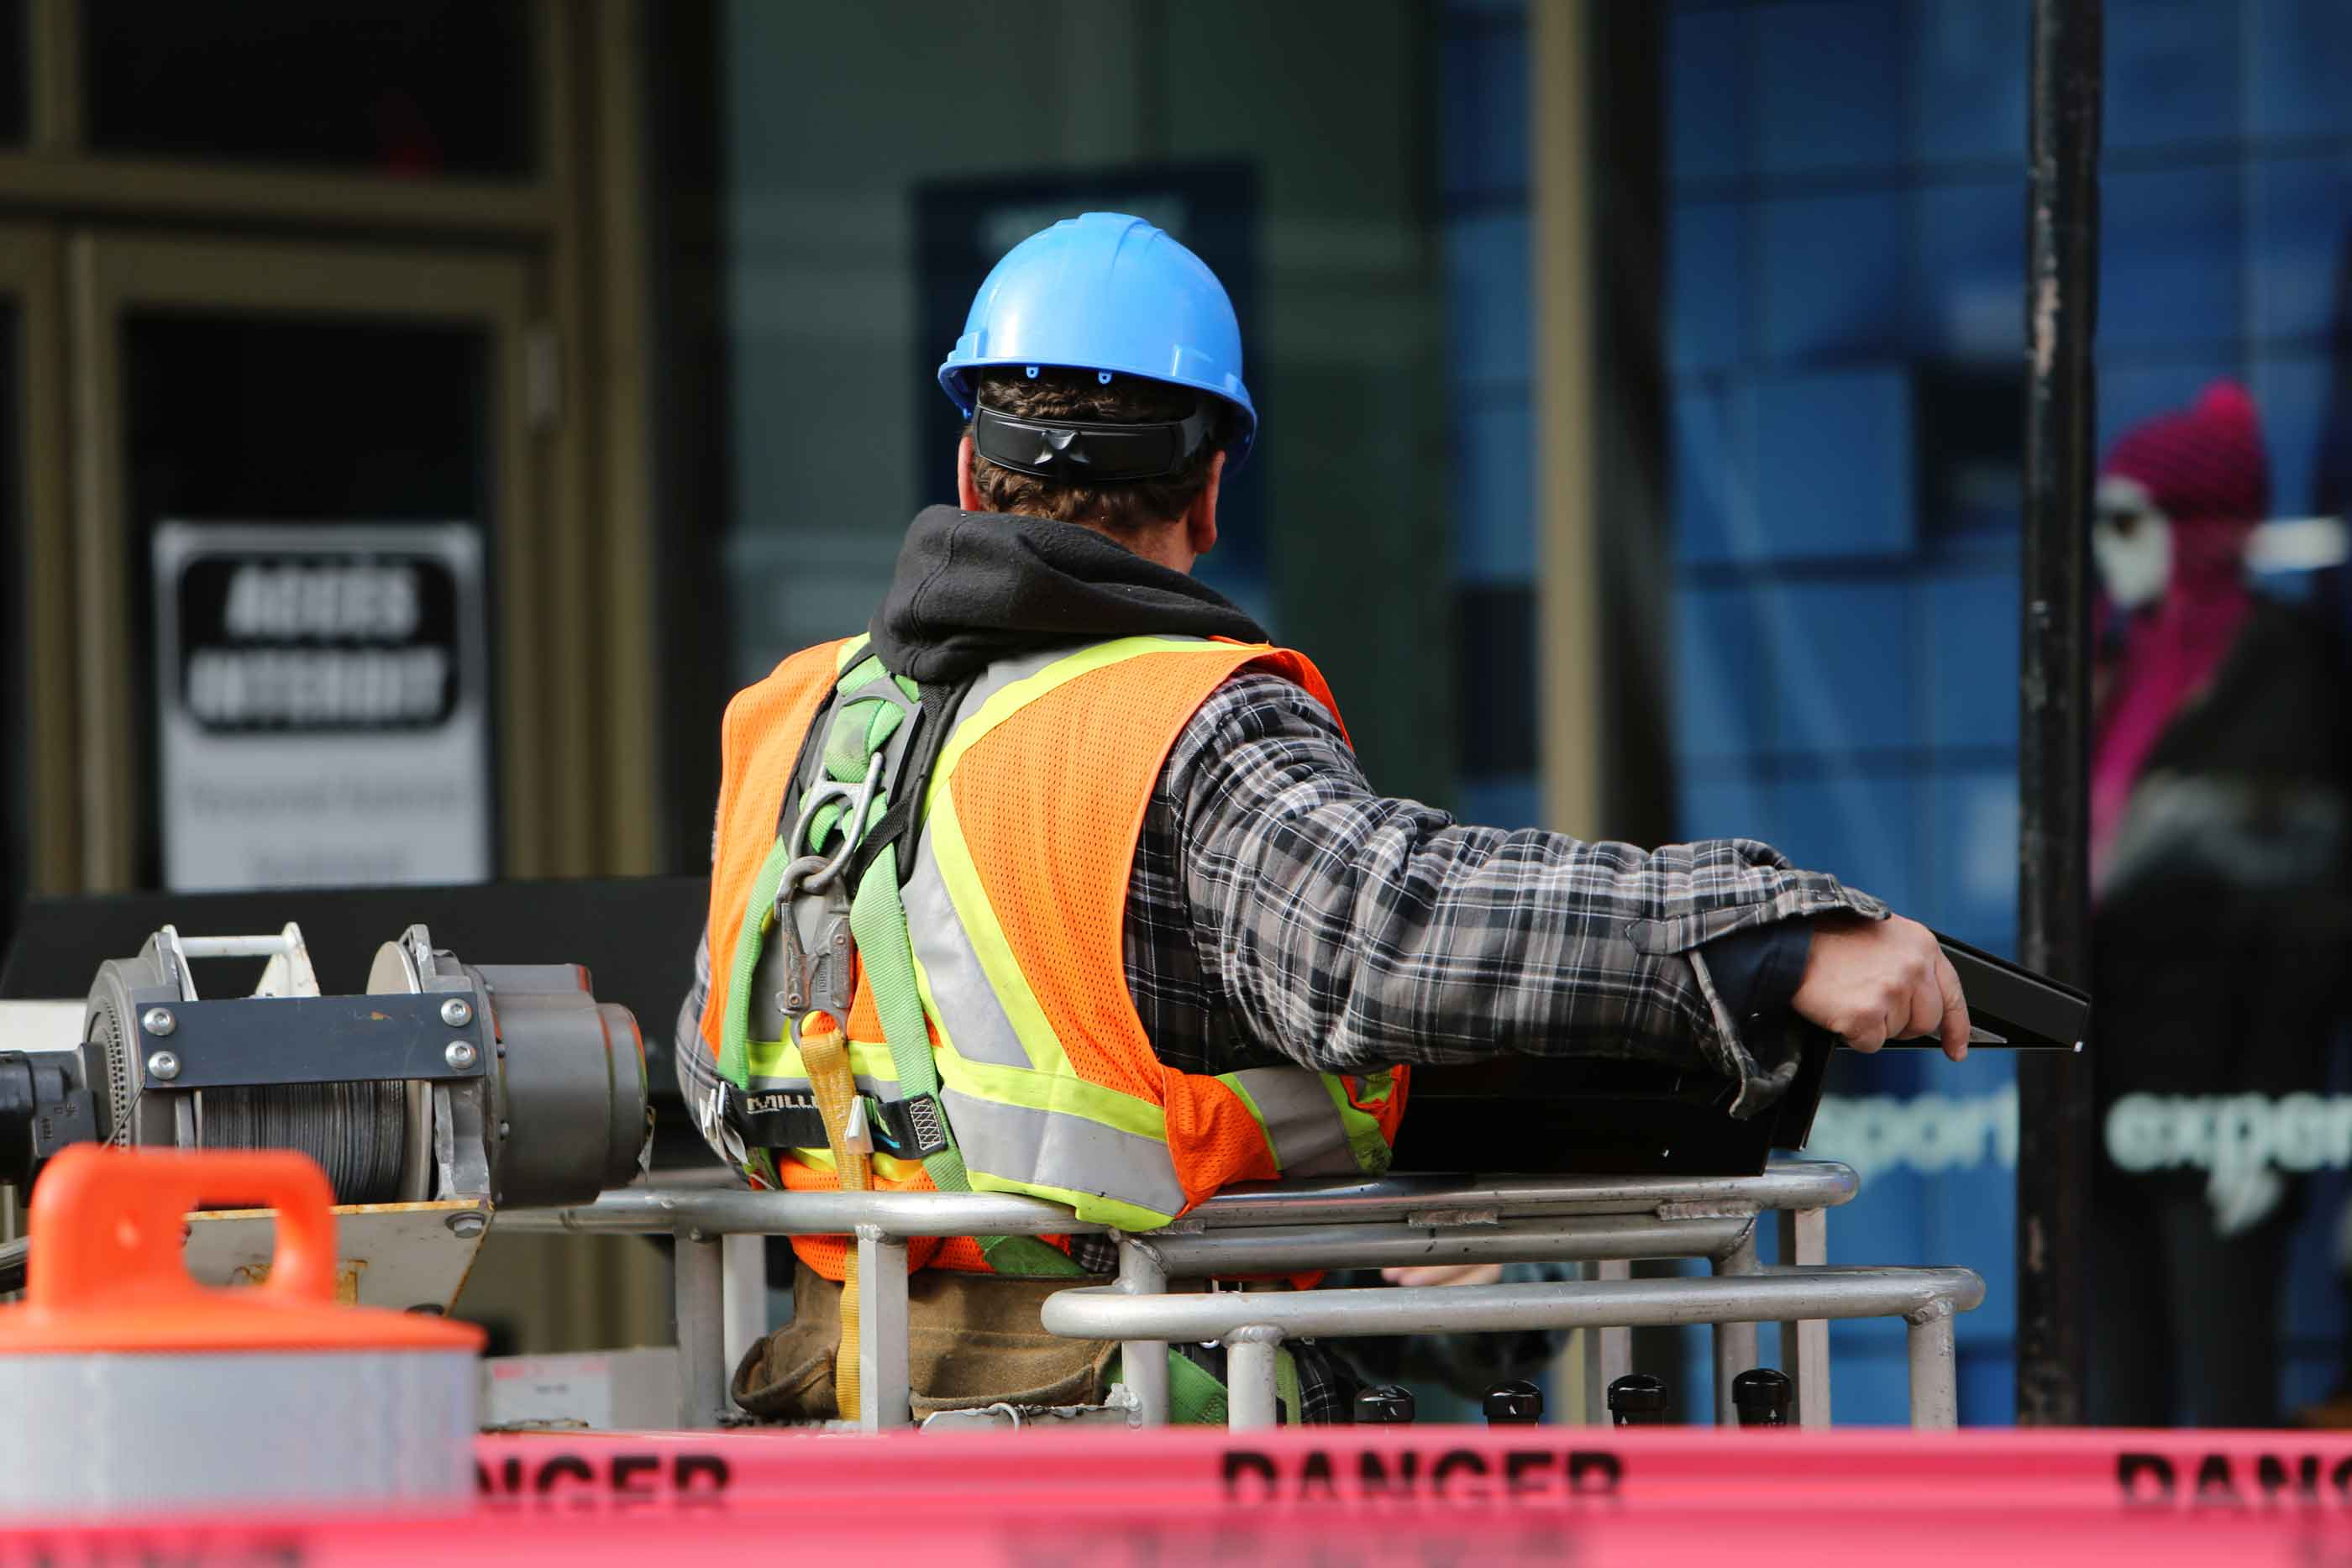 Workers Comp Changes in Florida | Guy Hurley